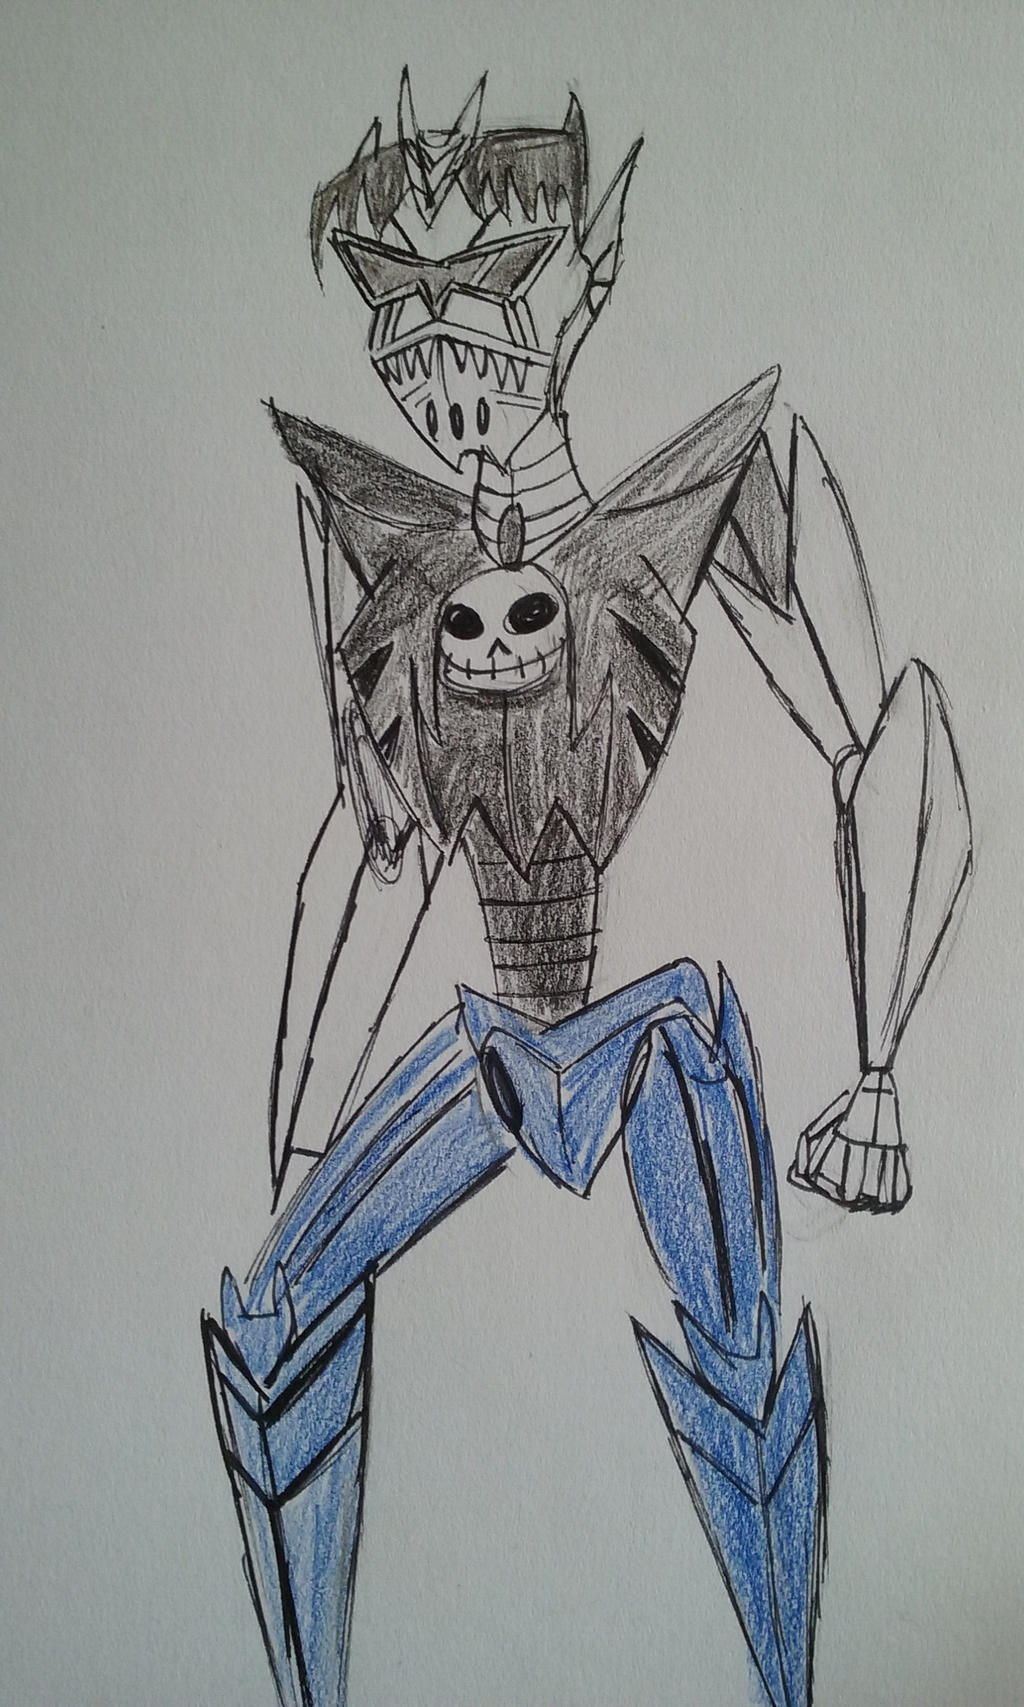 Invaderskull1995's Profile Picture